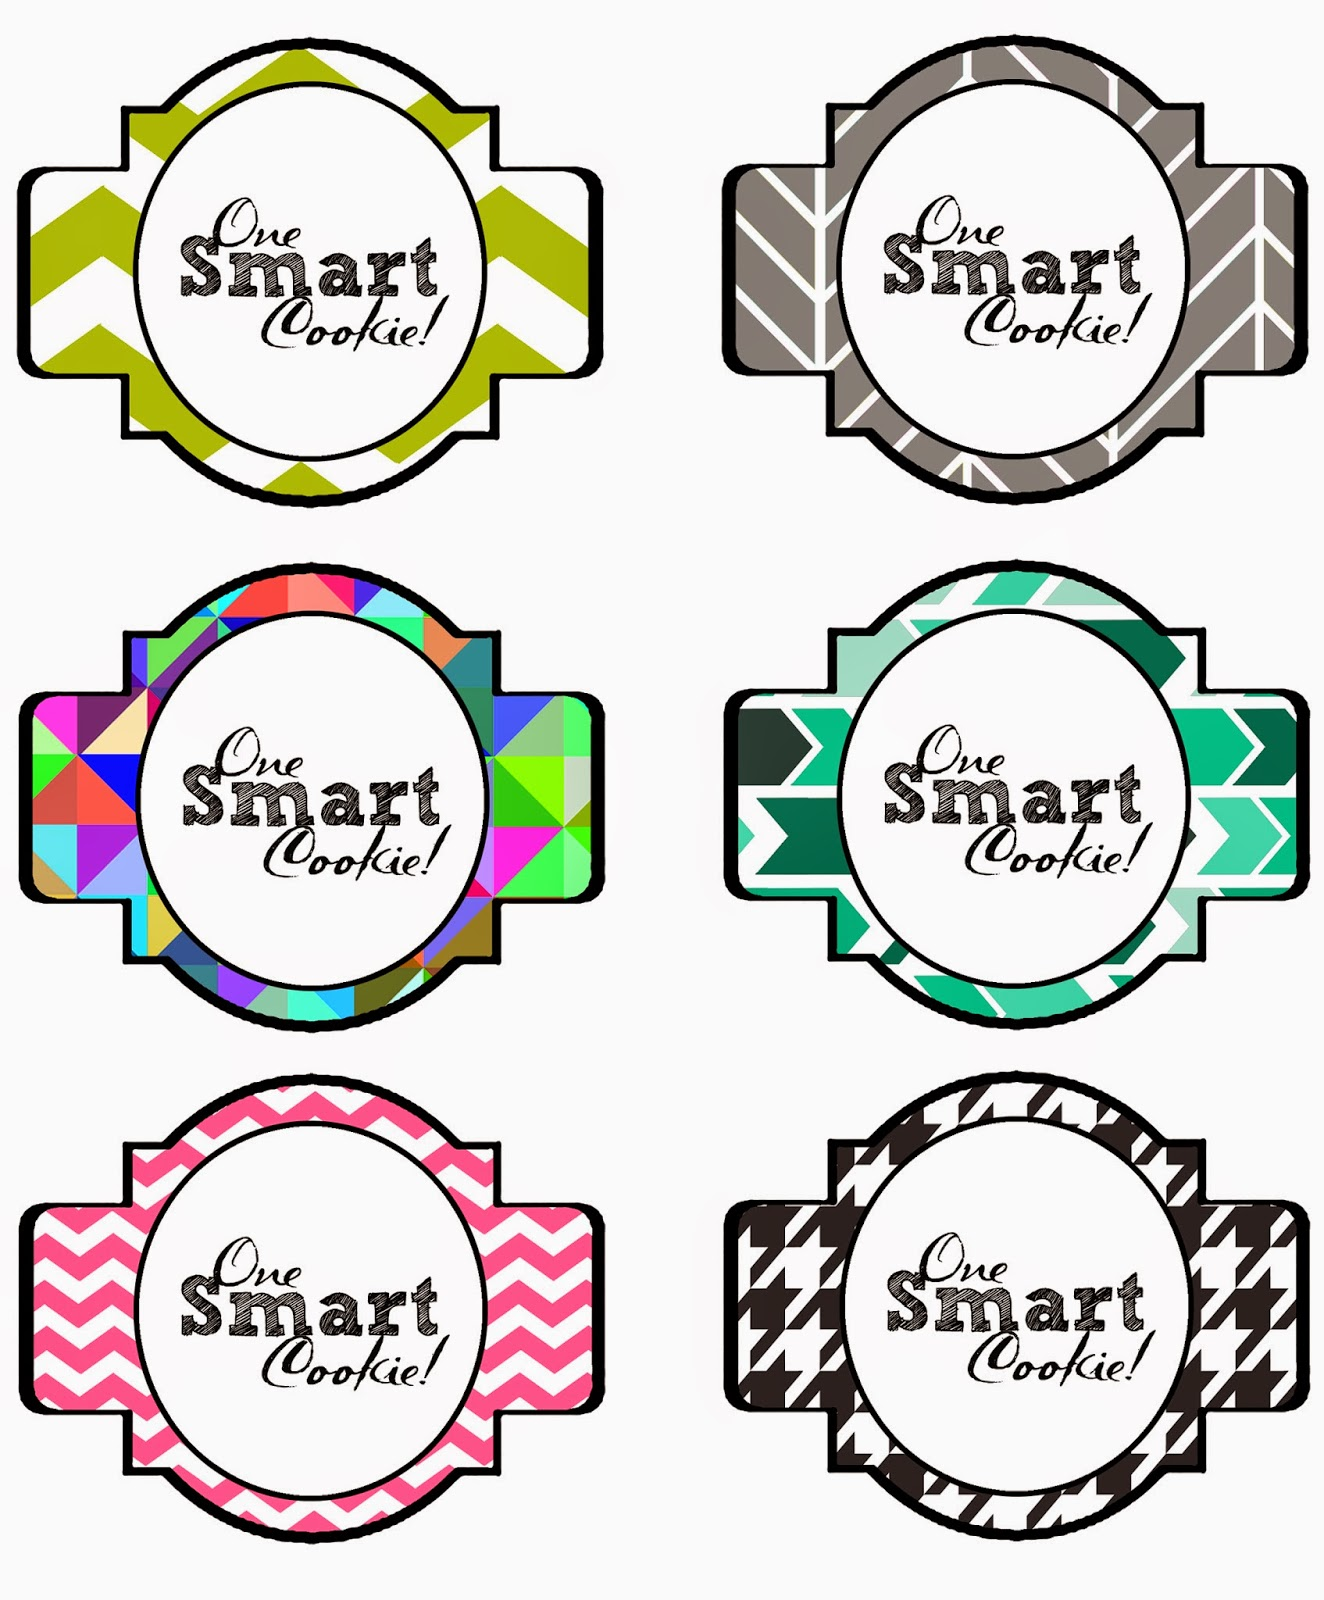 This is a picture of Handy One Smart Cookie Printable